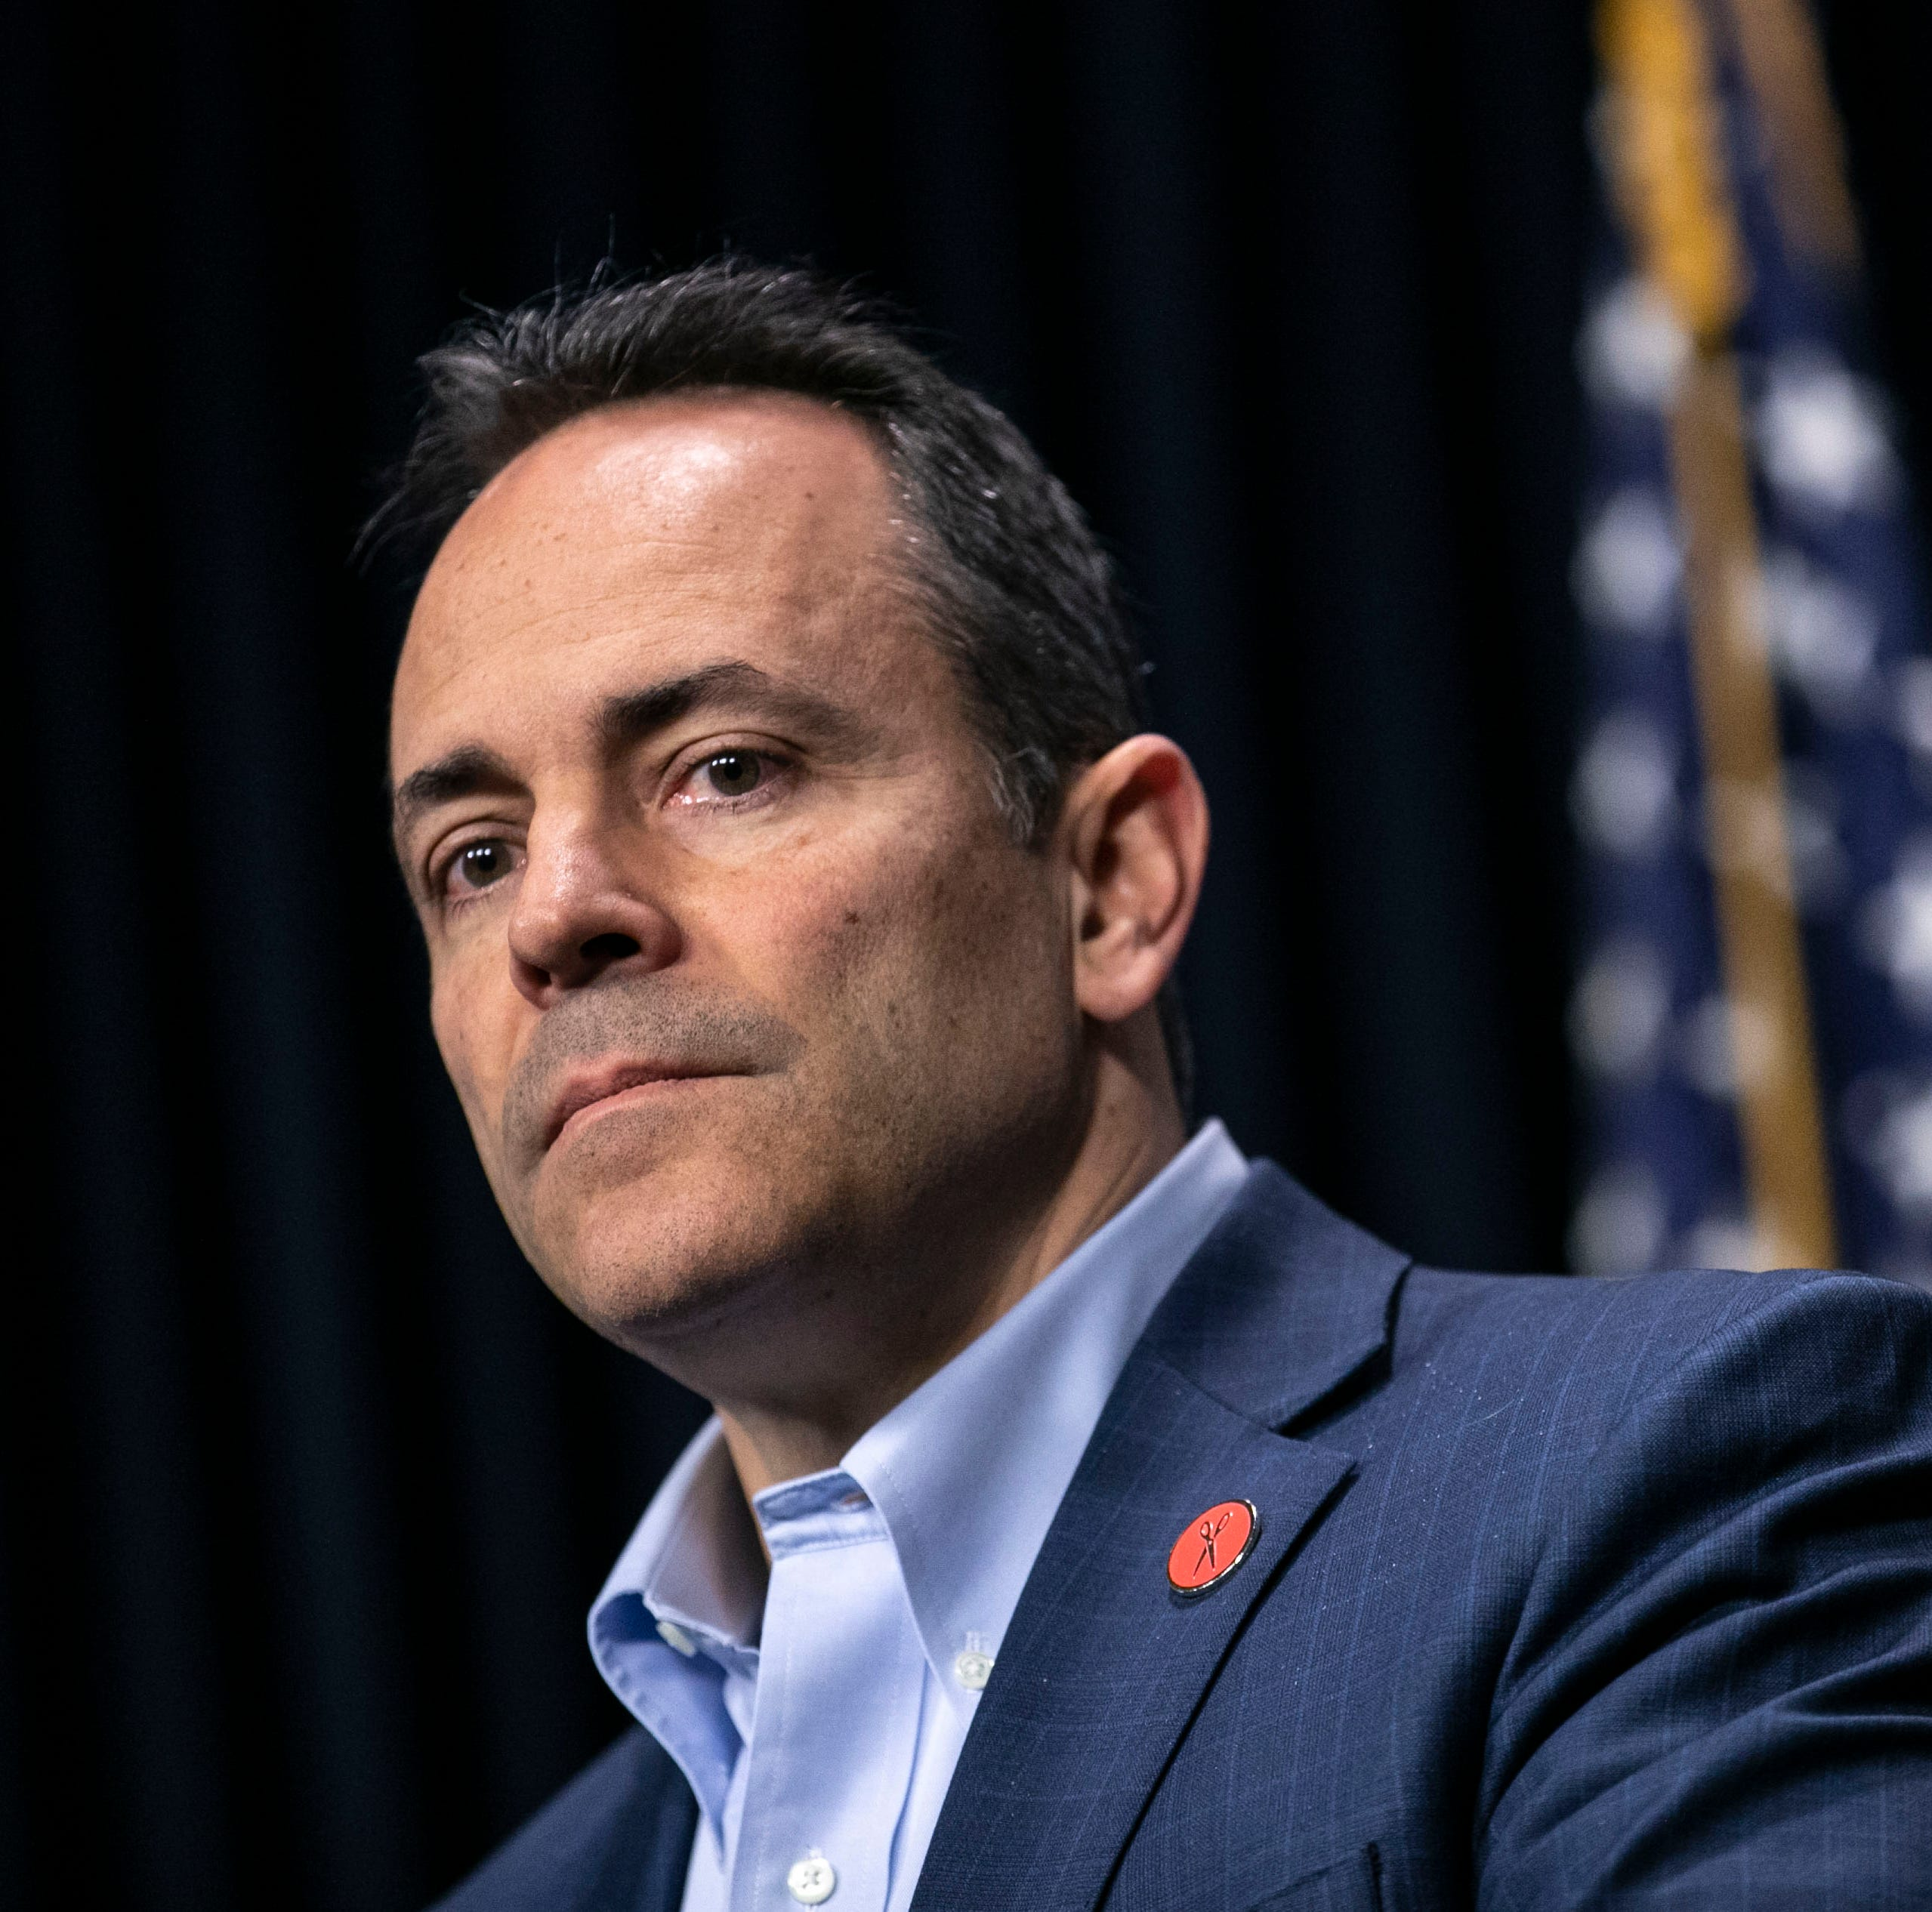 Poll shows Bevin approval slipping, Beshear ahead in possible matchup